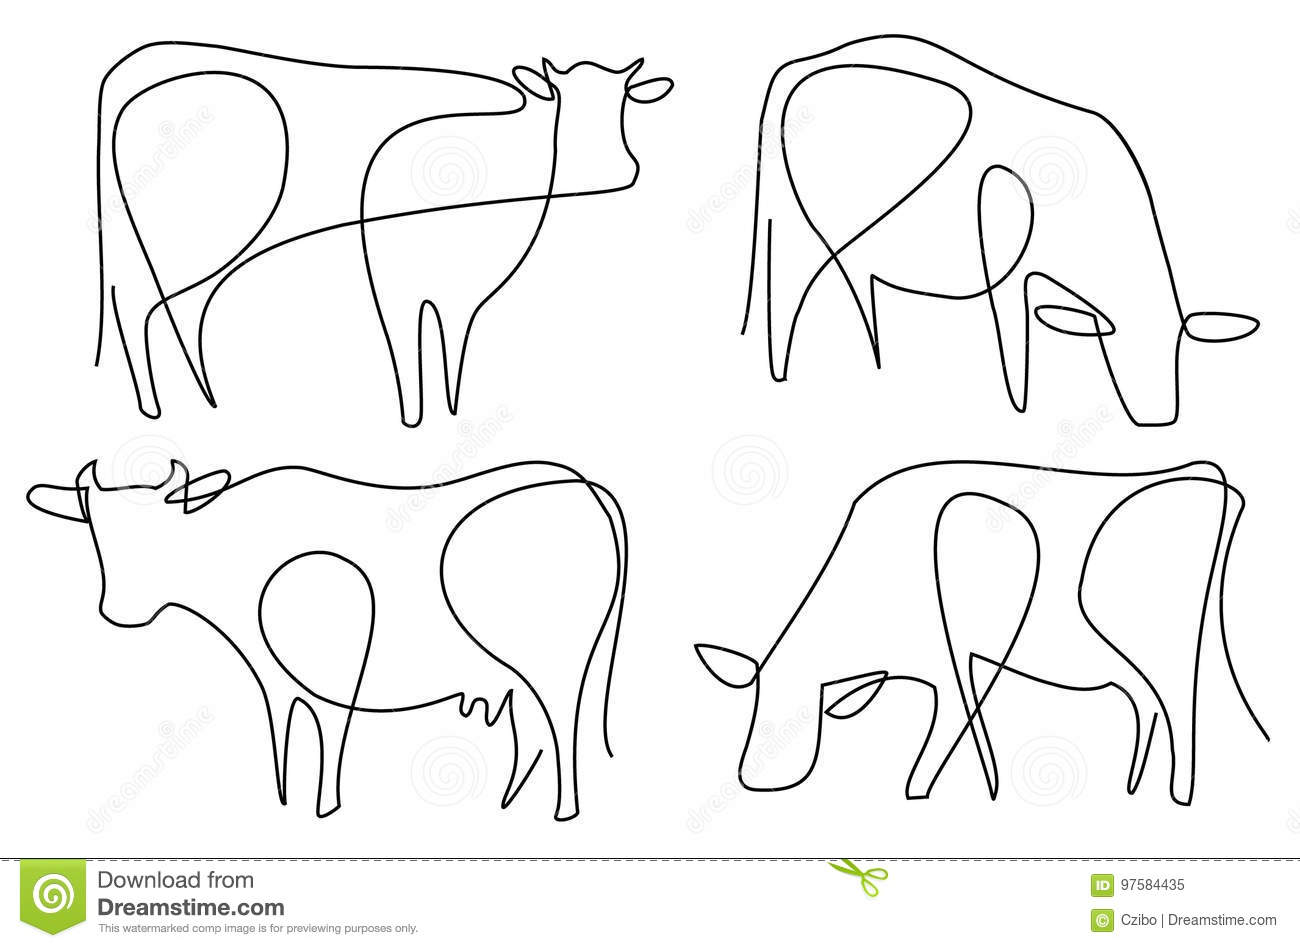 Line Drawing Software Free Download : Cow cartoons illustrations vector stock images